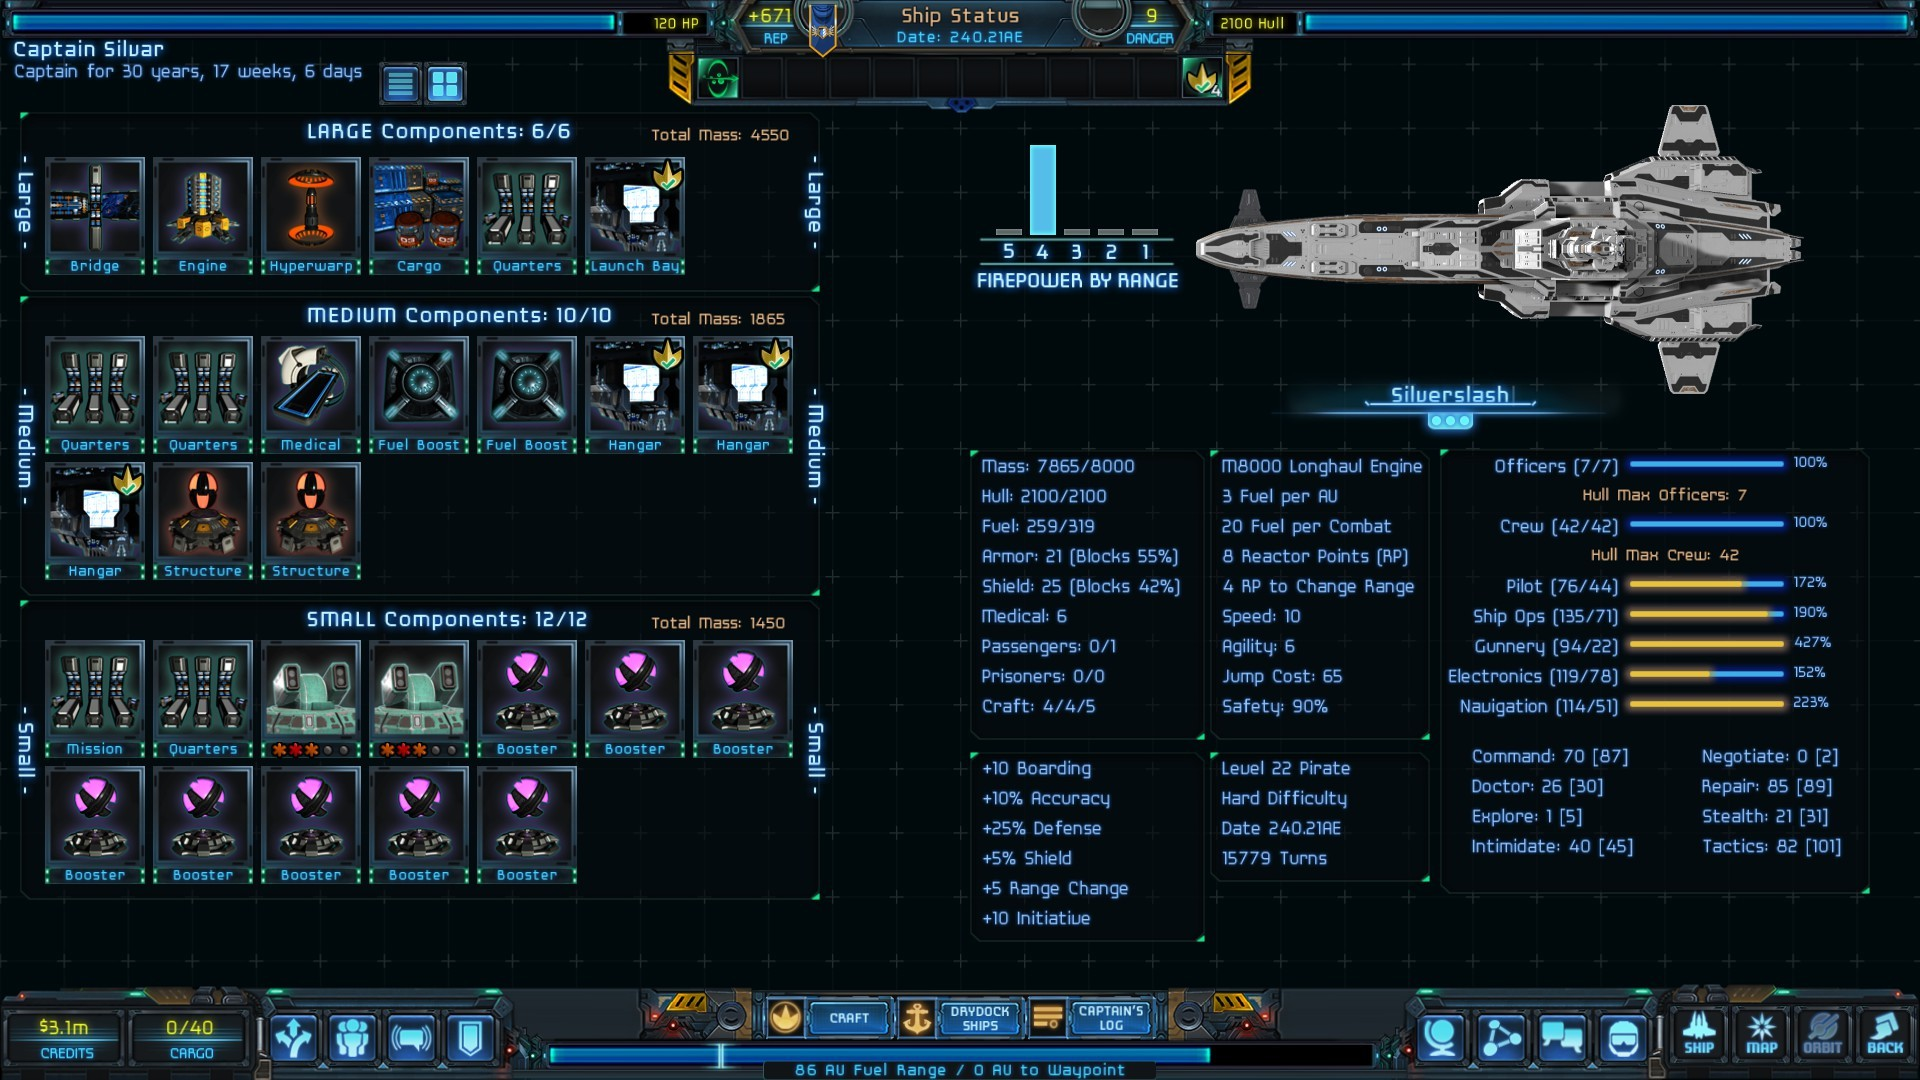 Jun 25 Save 33% and Update #161: Engine Burn Star Traders